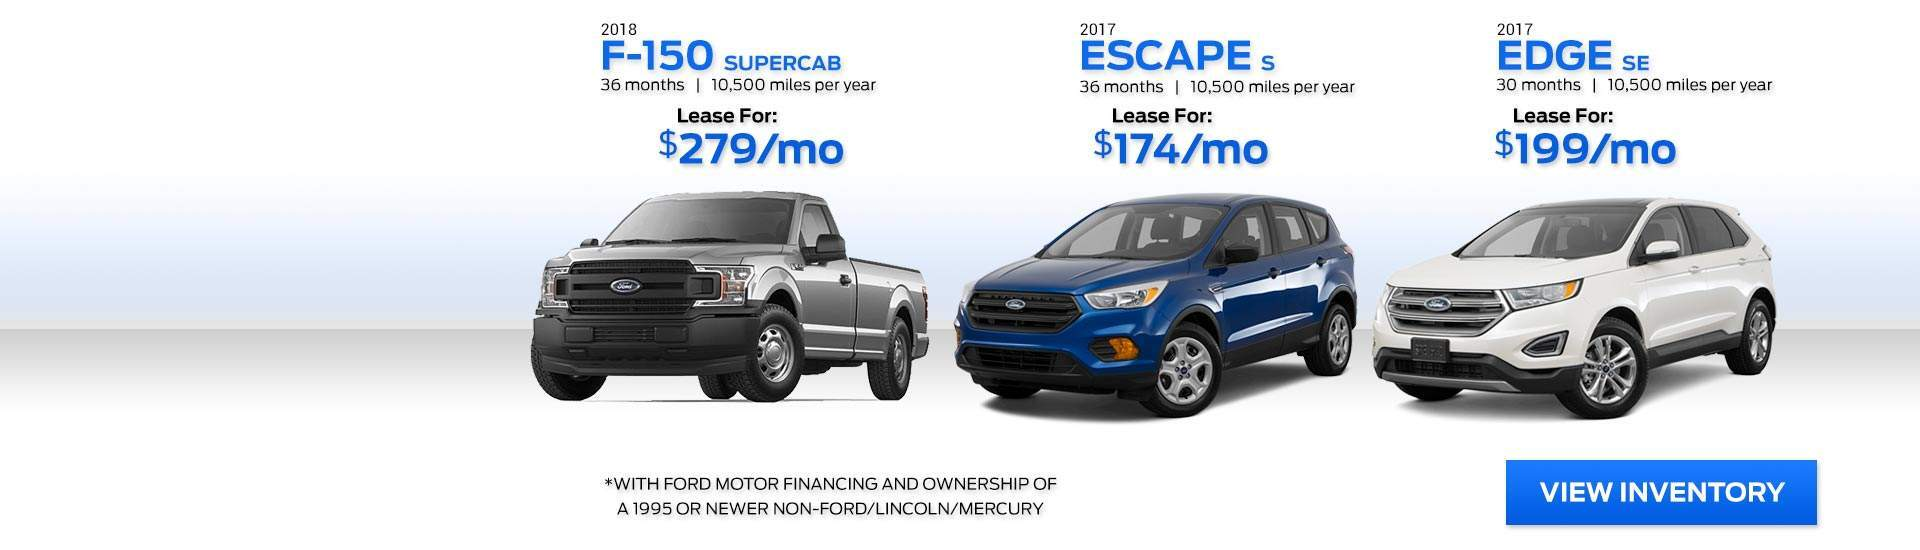 Seelye Ford November Specials